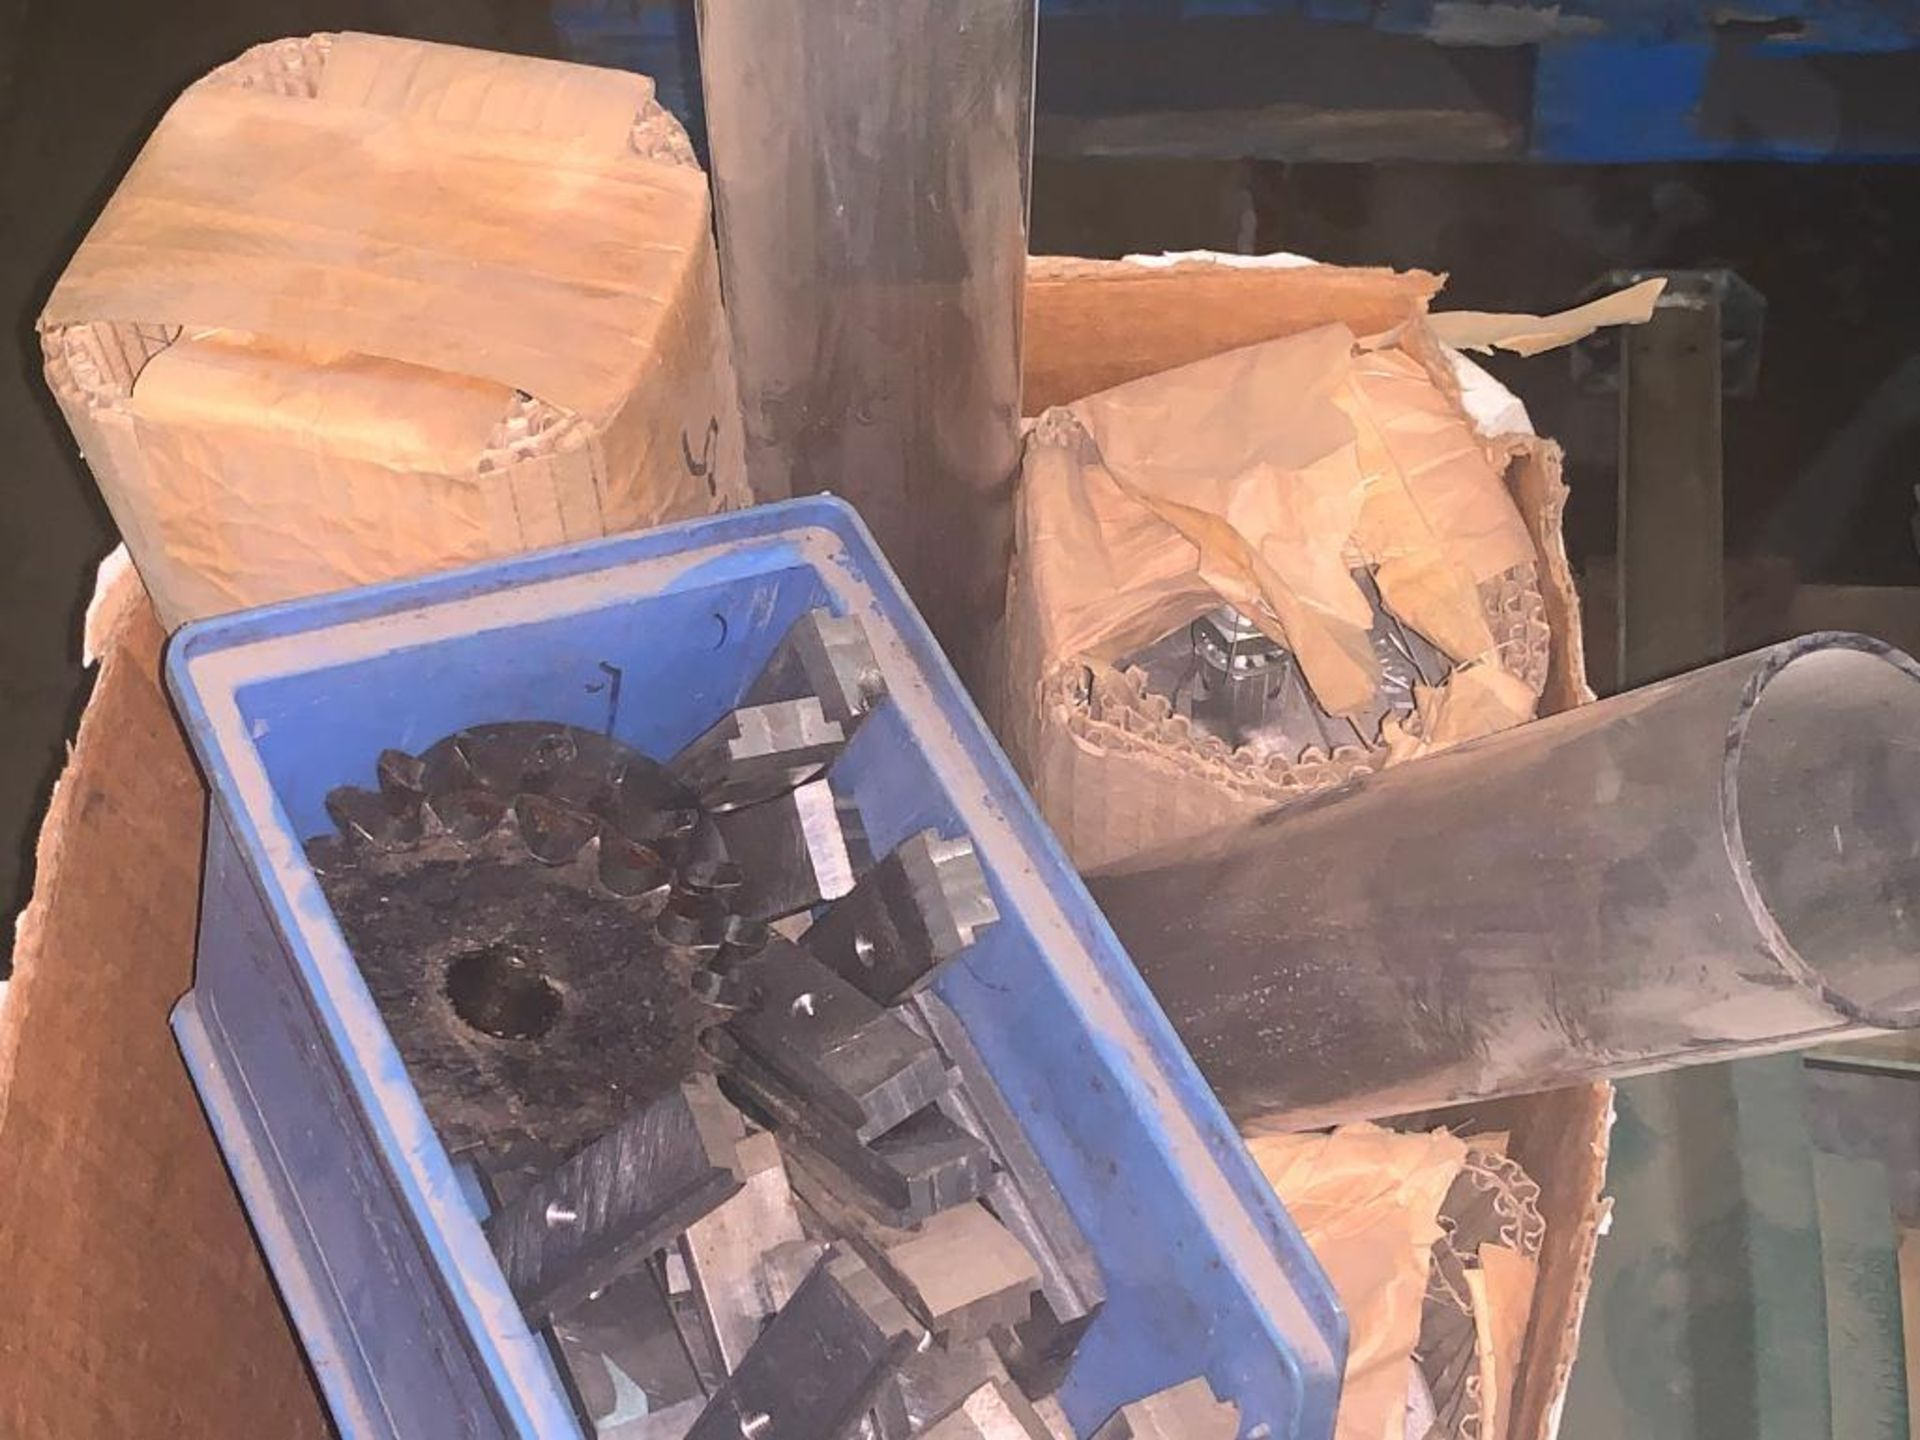 pallet of various parts - Image 7 of 9